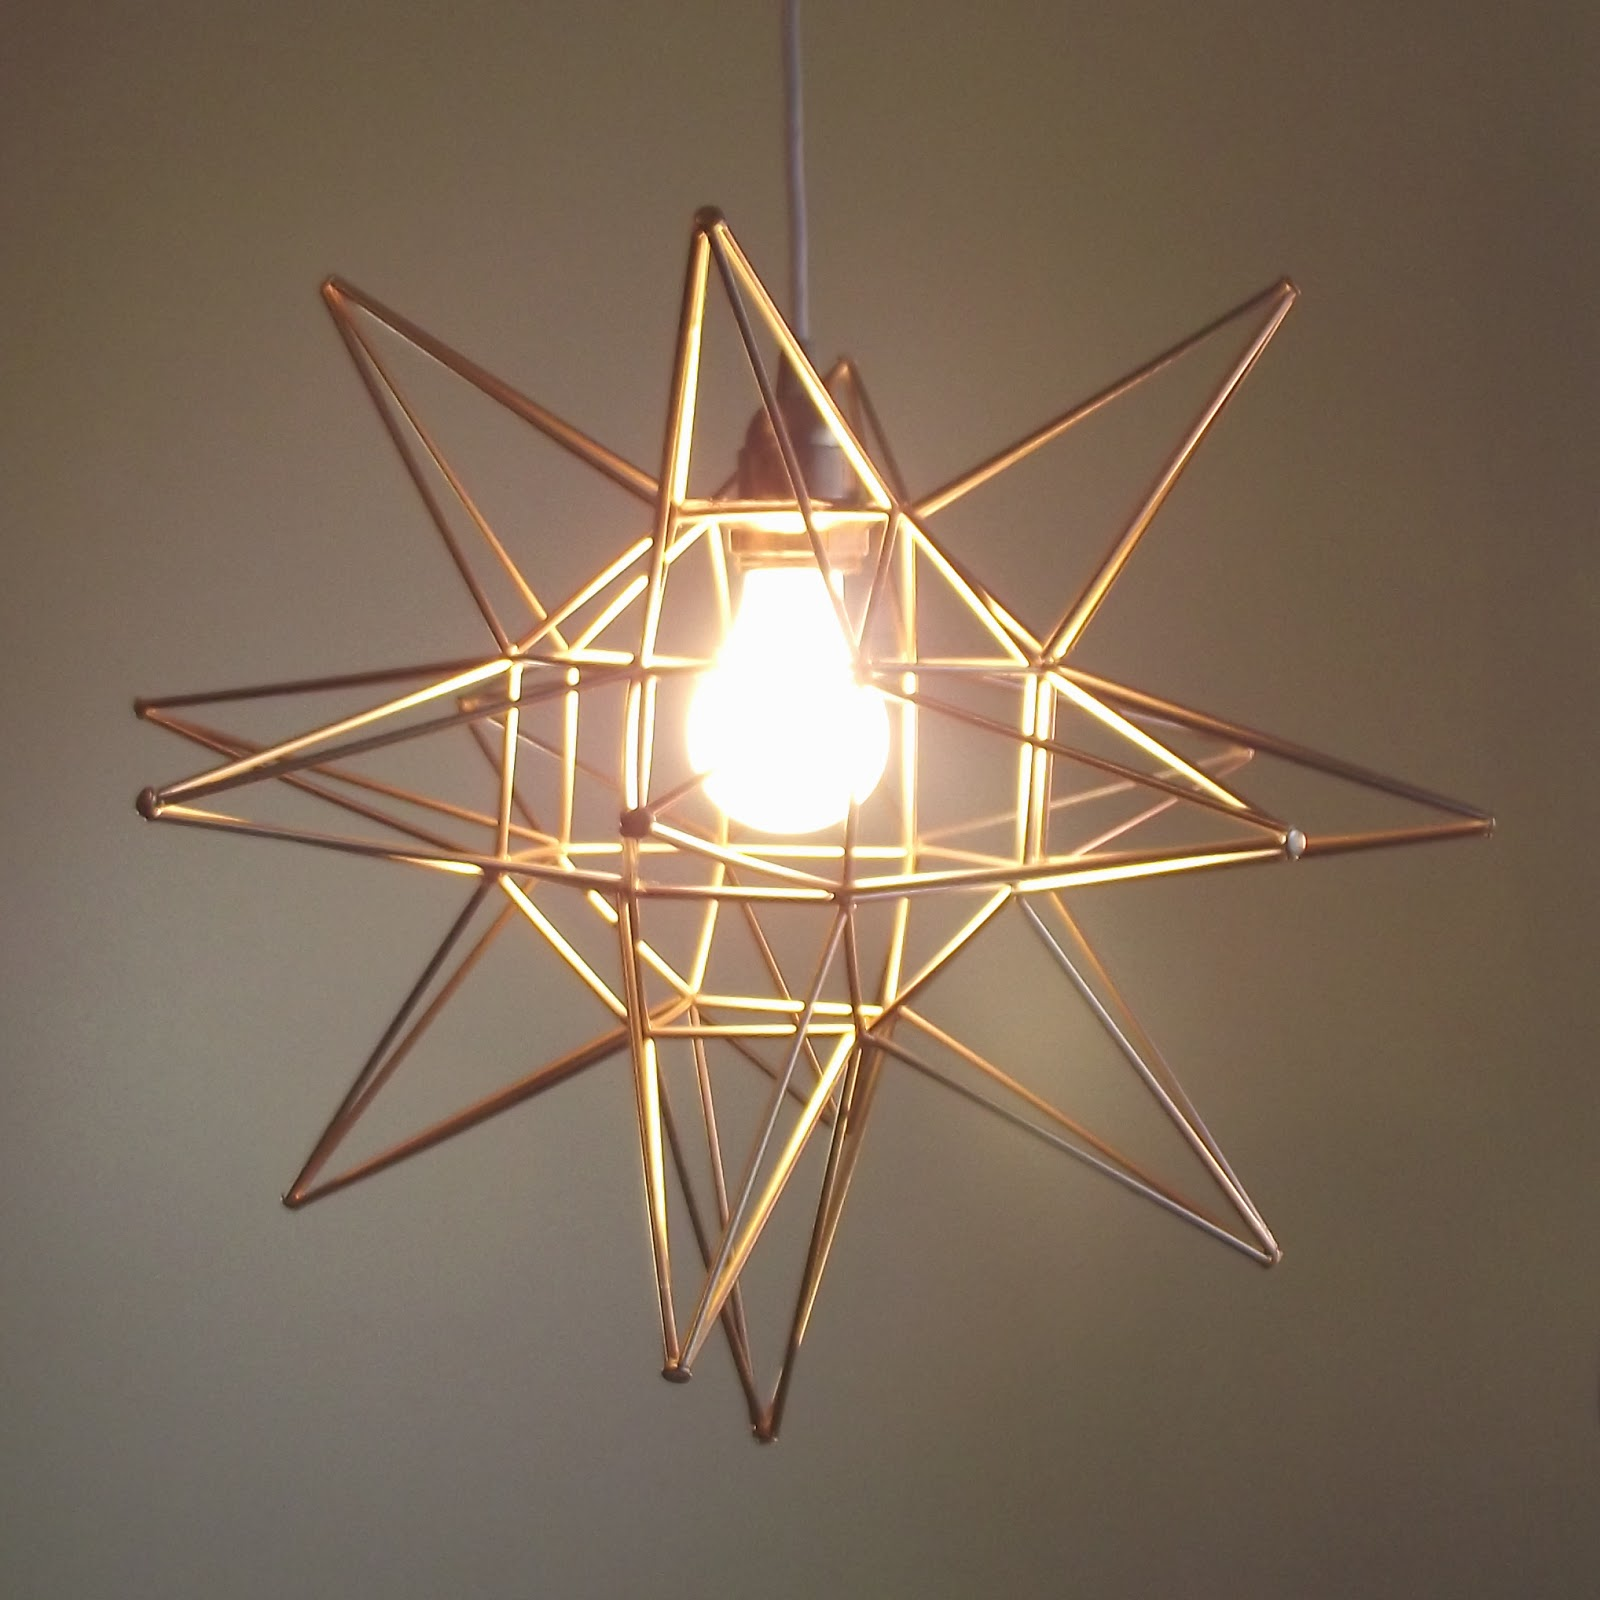 diy geometric moravian star pendant light oof thatu0027s a mouthfull - Star Pendant Light